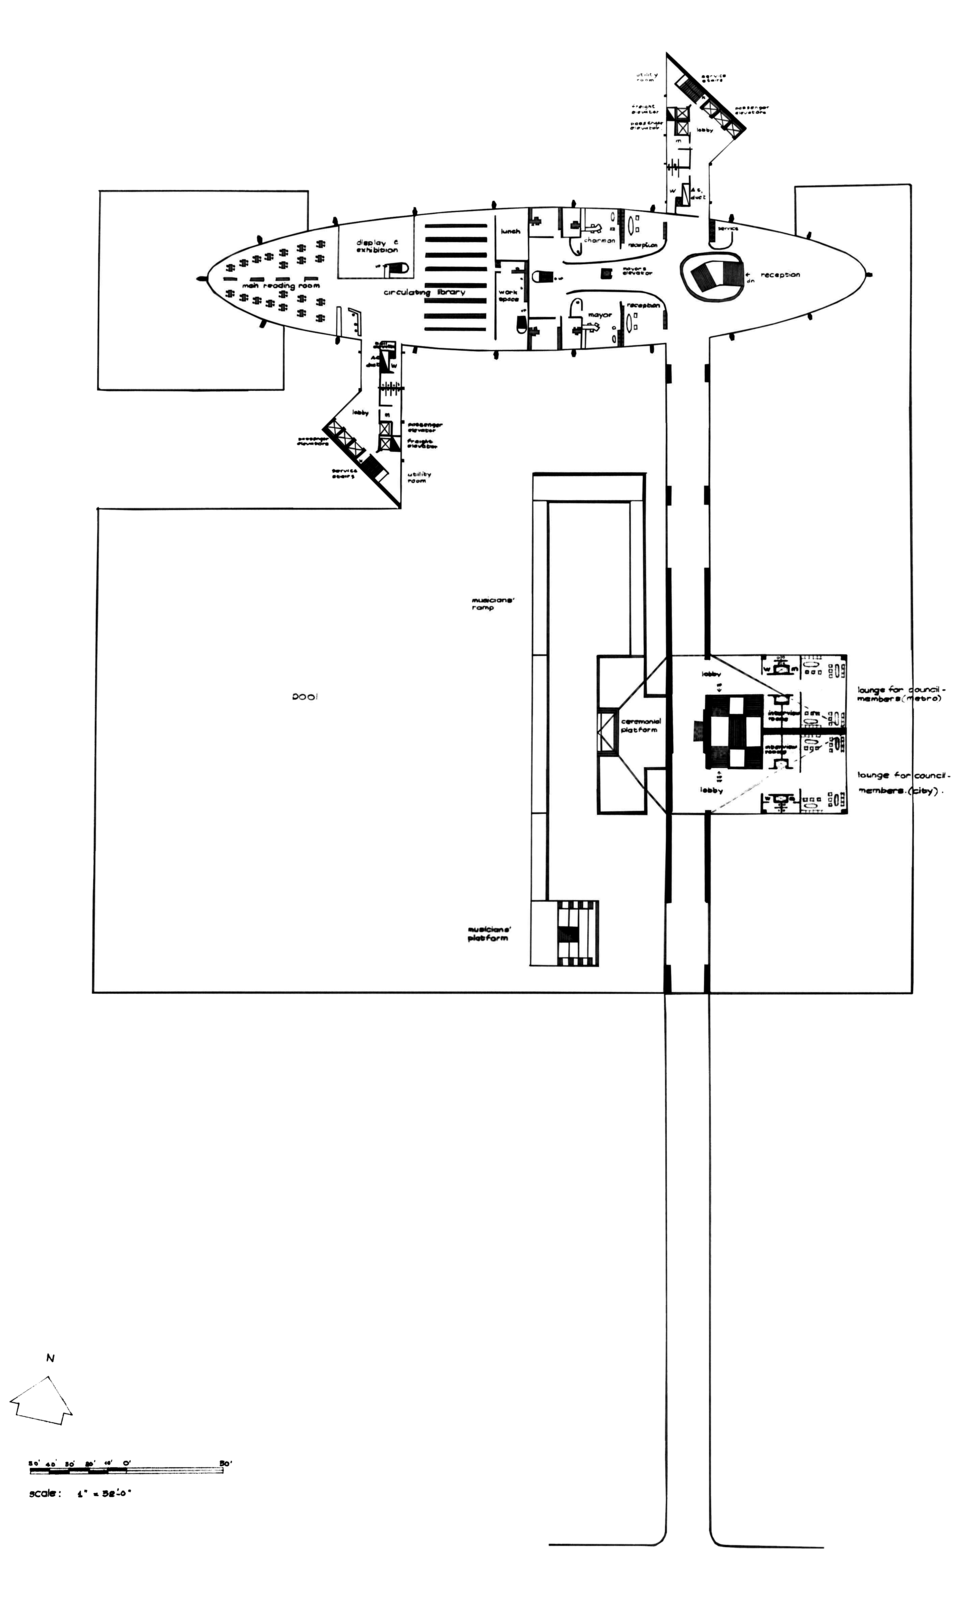 First (main) floor plan - Council Chamber lobby, Mayor's office, a circulating library and reception  areas